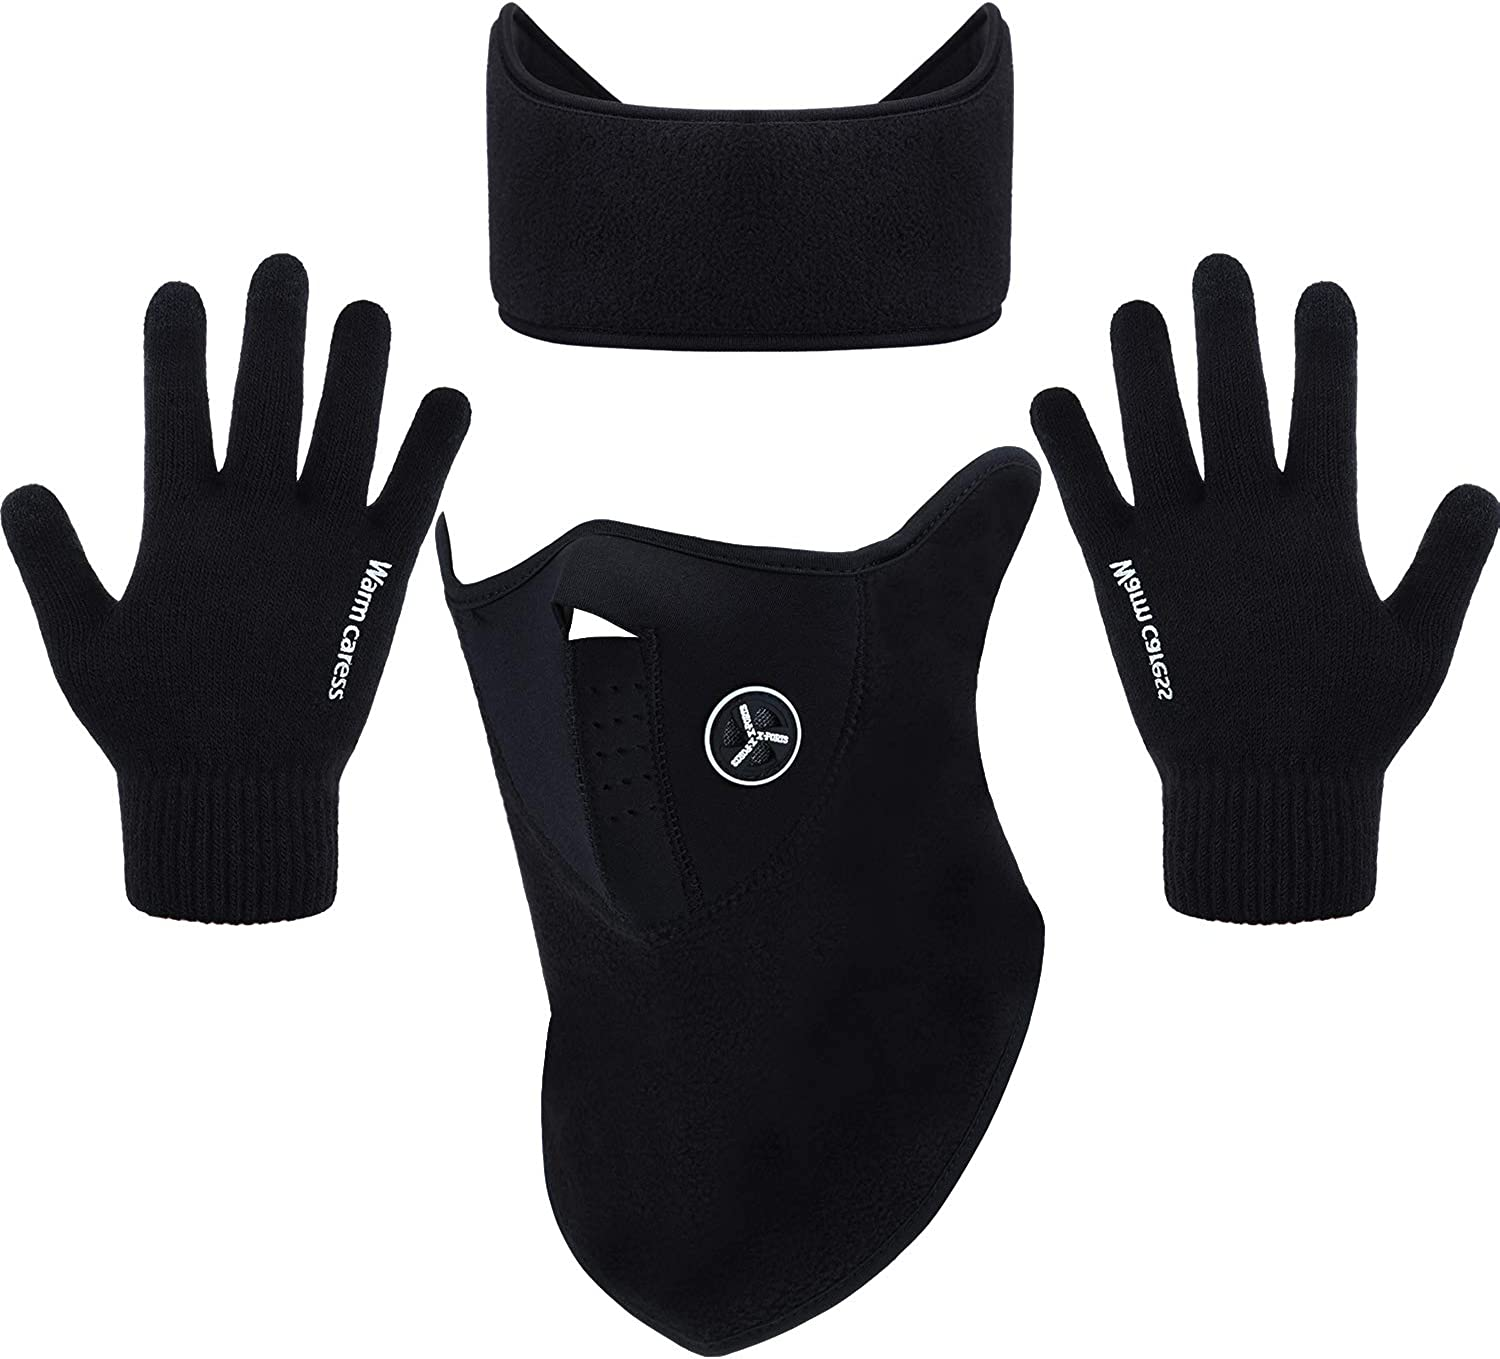 3 Pieces Winter Face Mask Ear Warmer Headband Touch Screen Gloves for Cold Winter